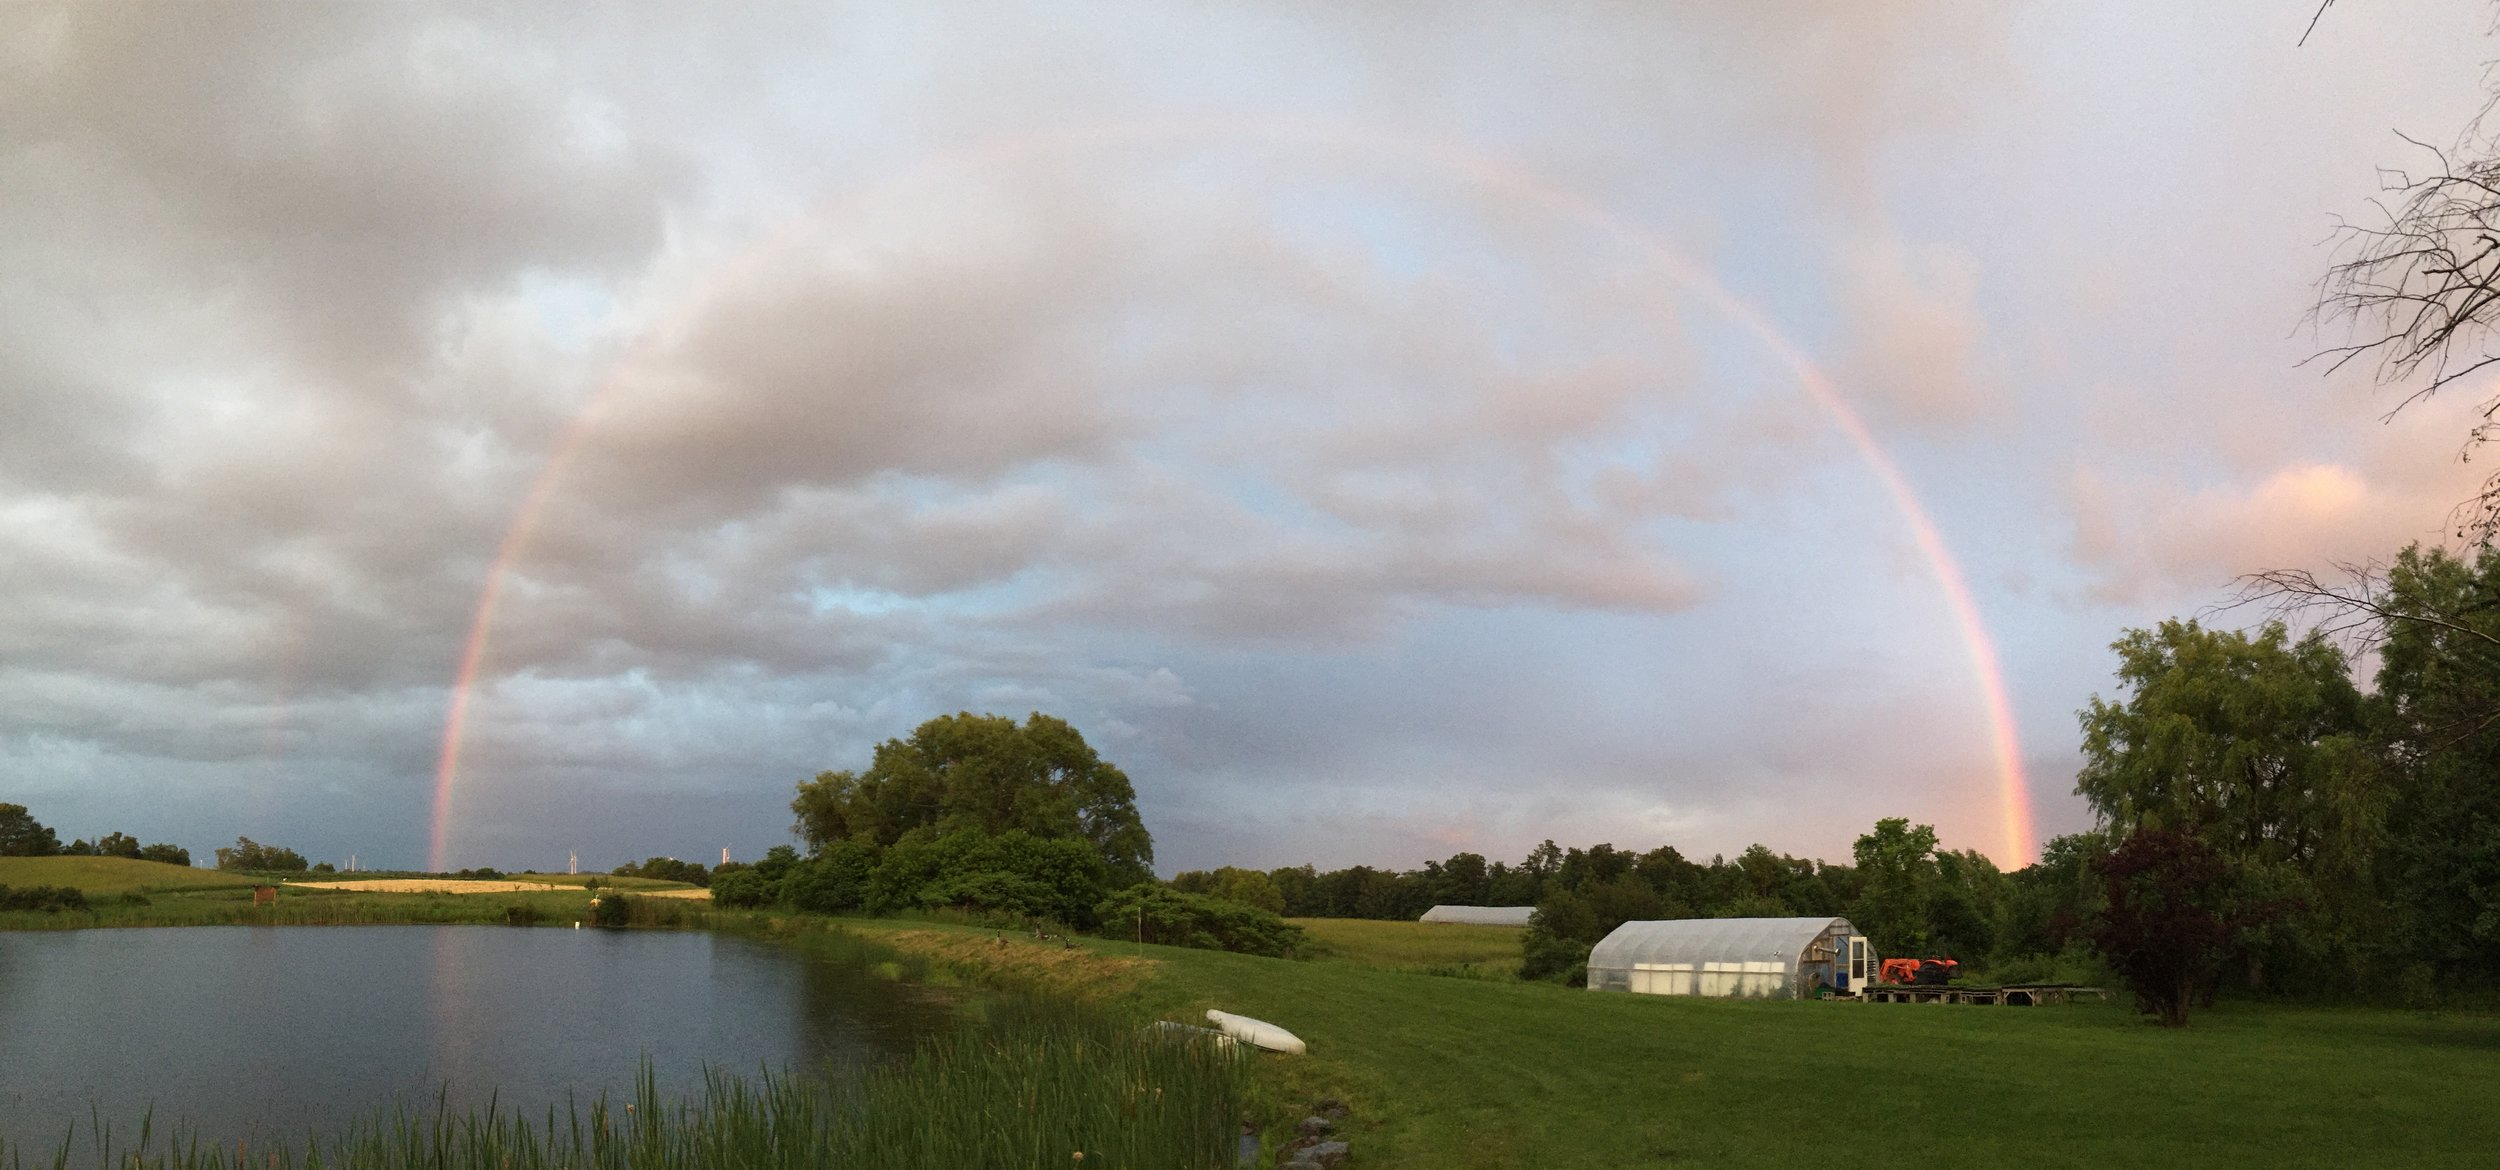 This is from last year… we haven't had enough sun for rainbows yet in 2019!